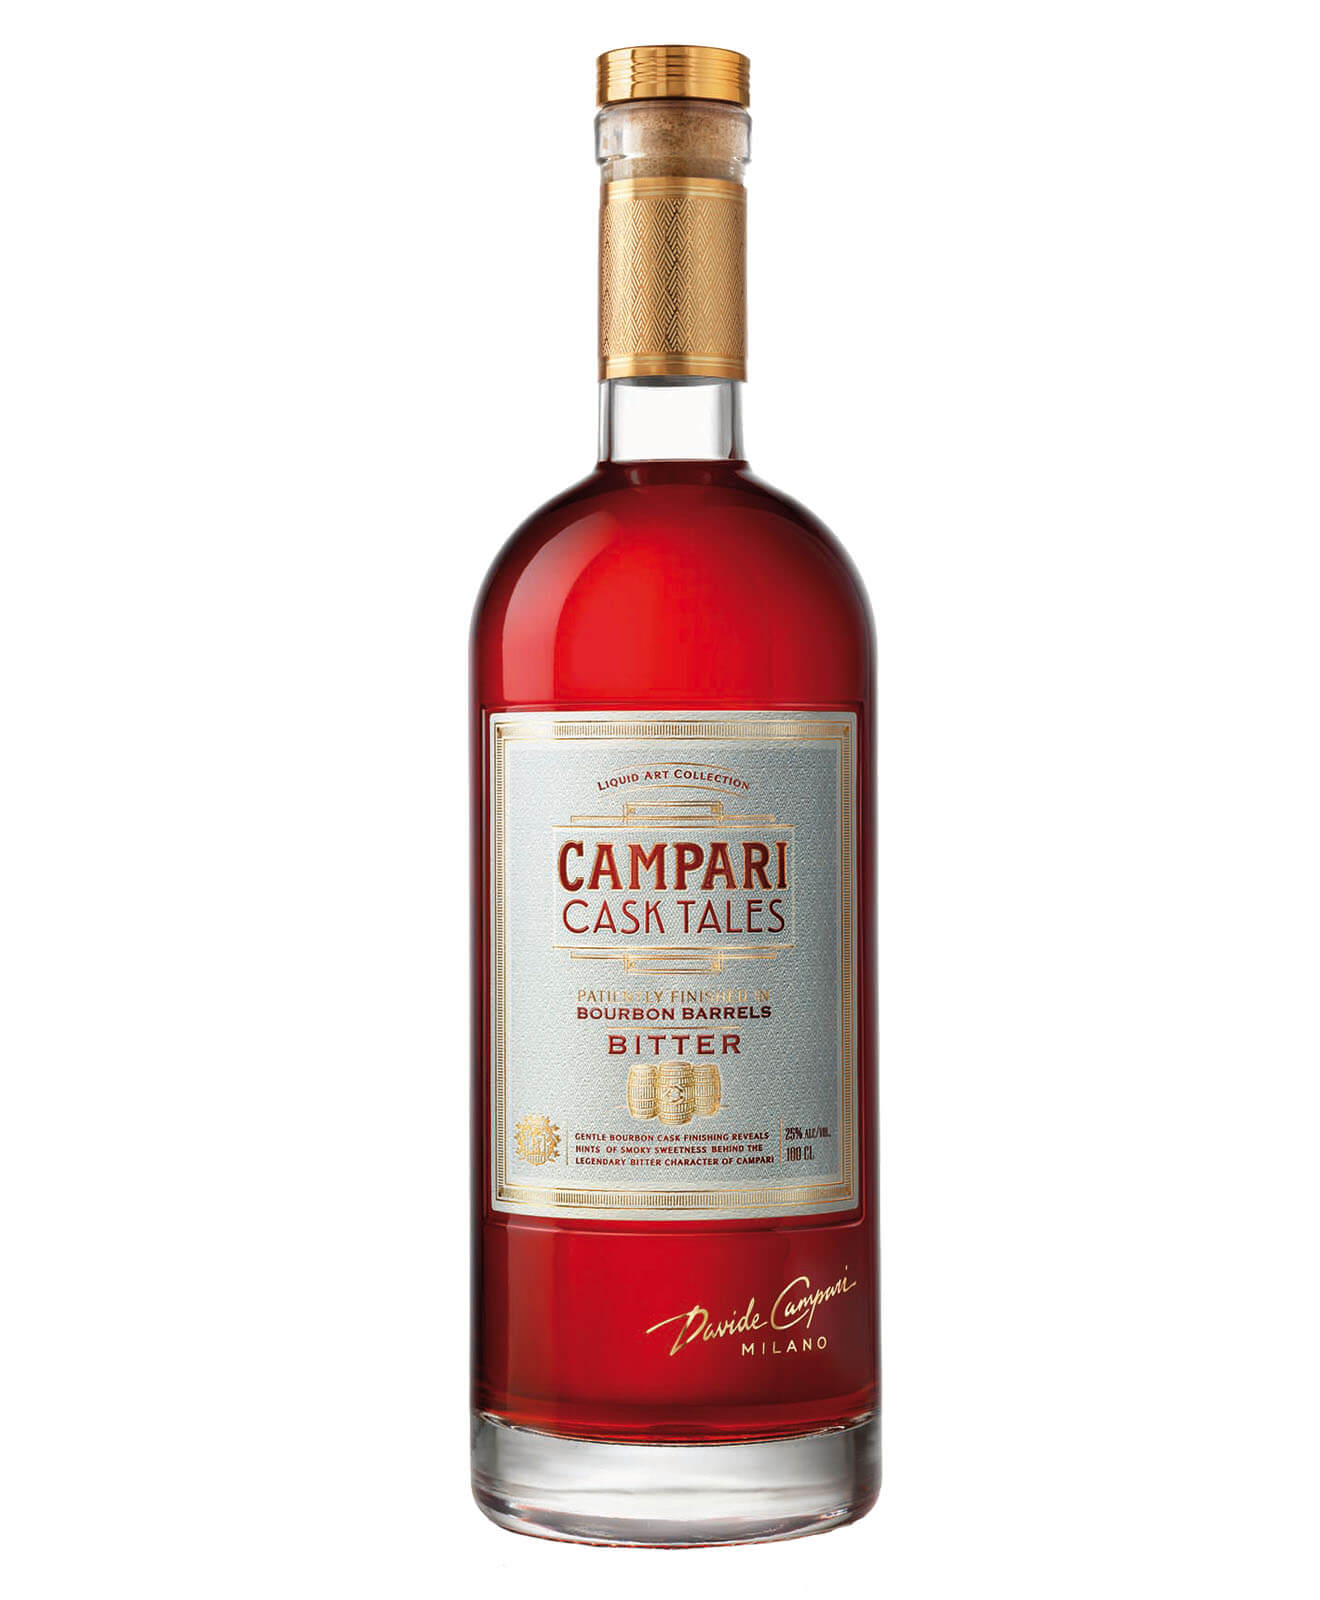 Campari Cask Tales, bottle on white